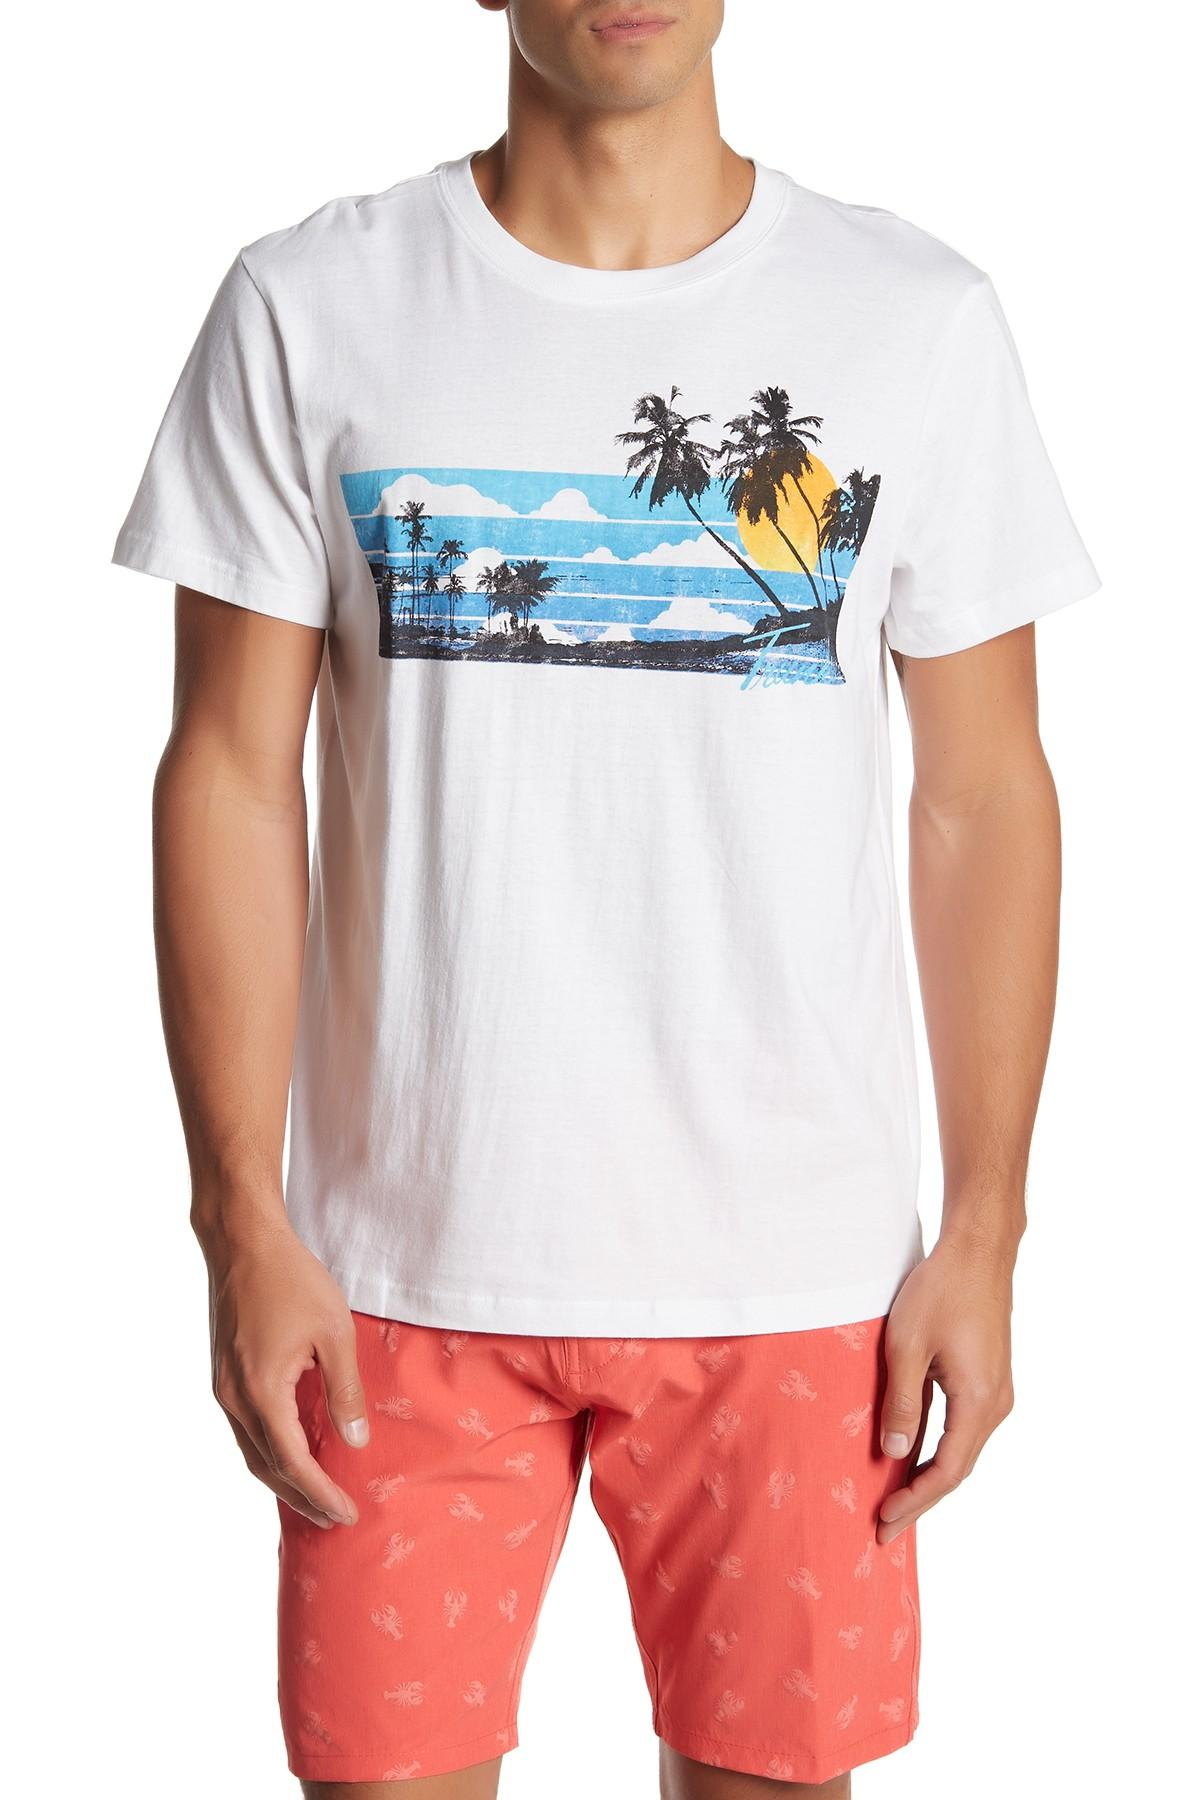 b27cb97c66074 Lyst - TRUNKS SURF AND SWIM CO Tropical Graphic Print T-shirt in ...